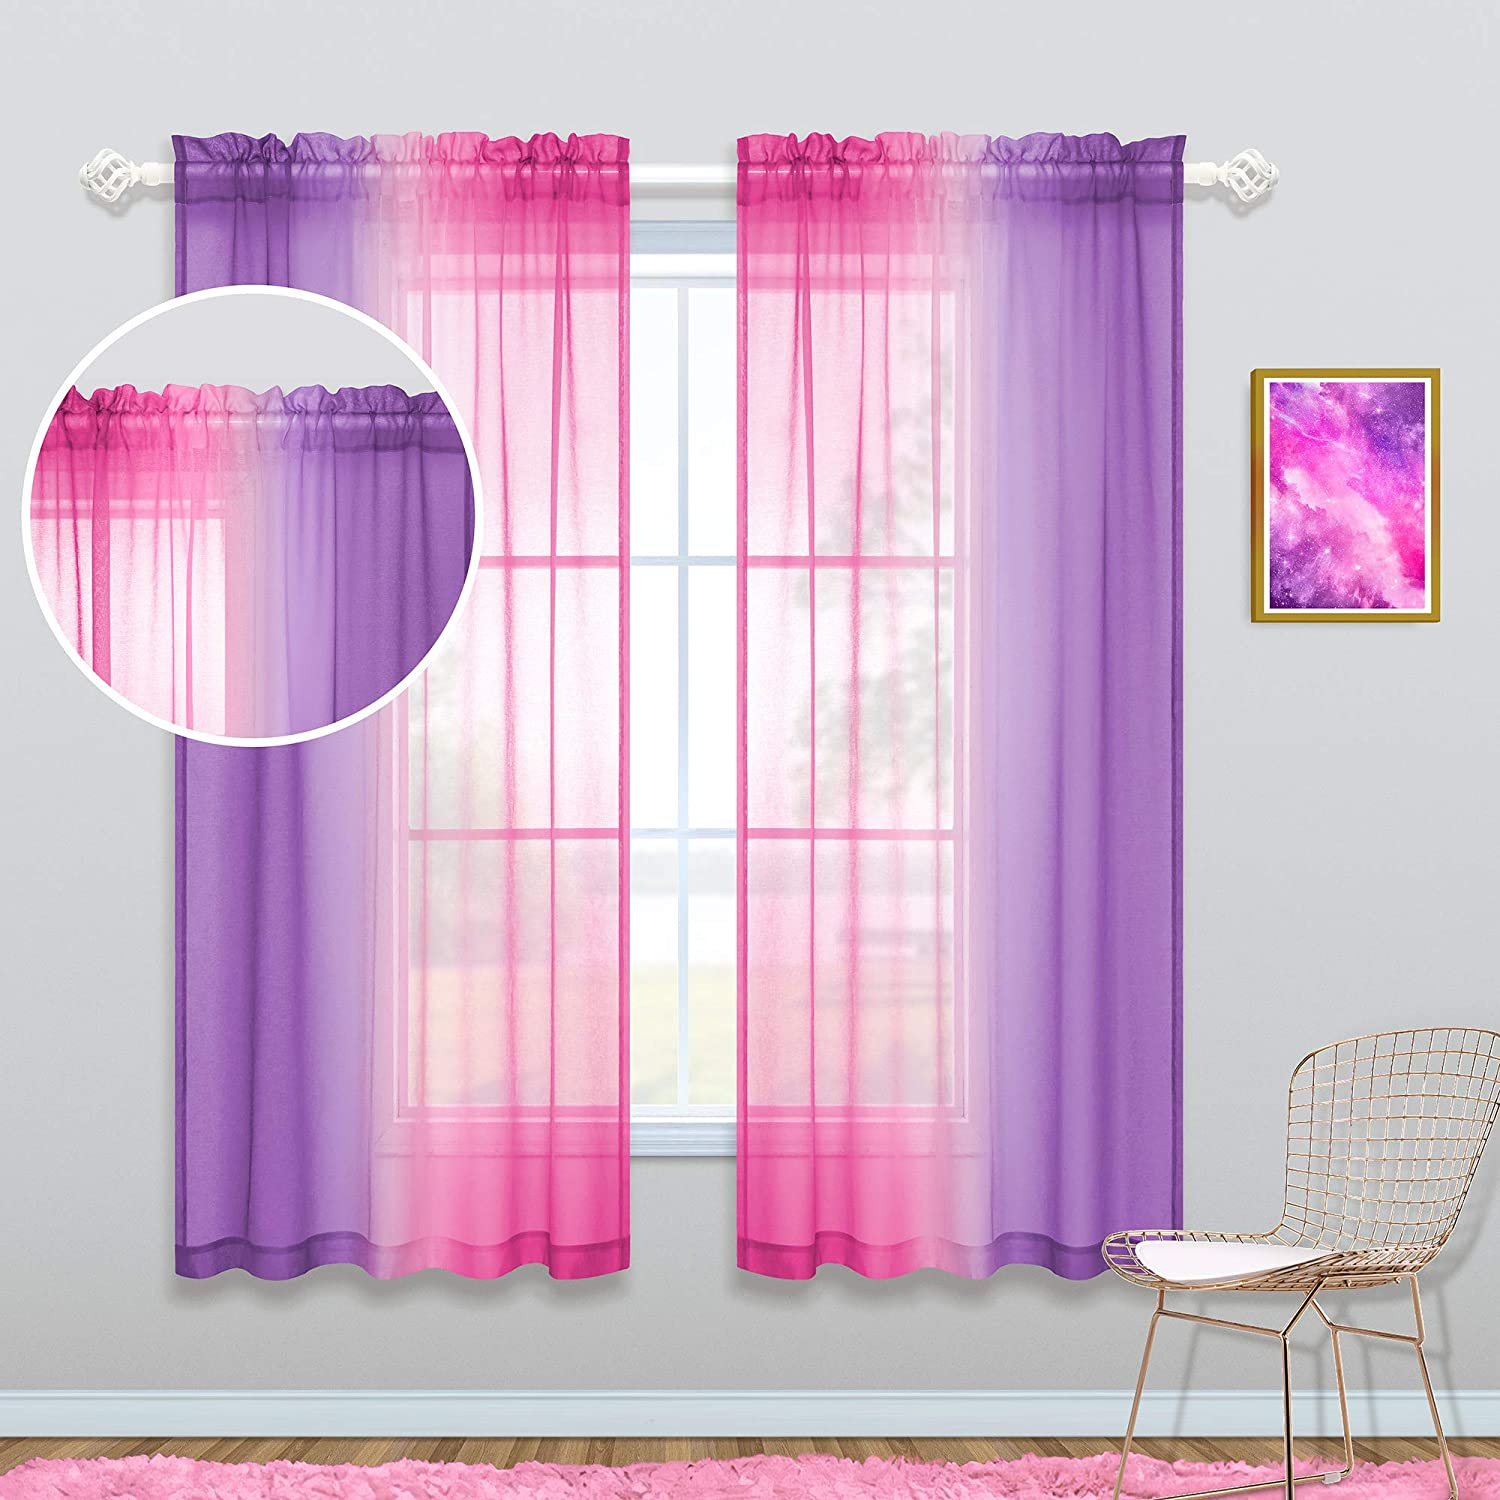 Pink and Purple Curtains 63 Inch Length for Girls Room Decor Set of 2 Panels Window Sheer Ombre Pink Lilac Curtains for Bedroom Decorations